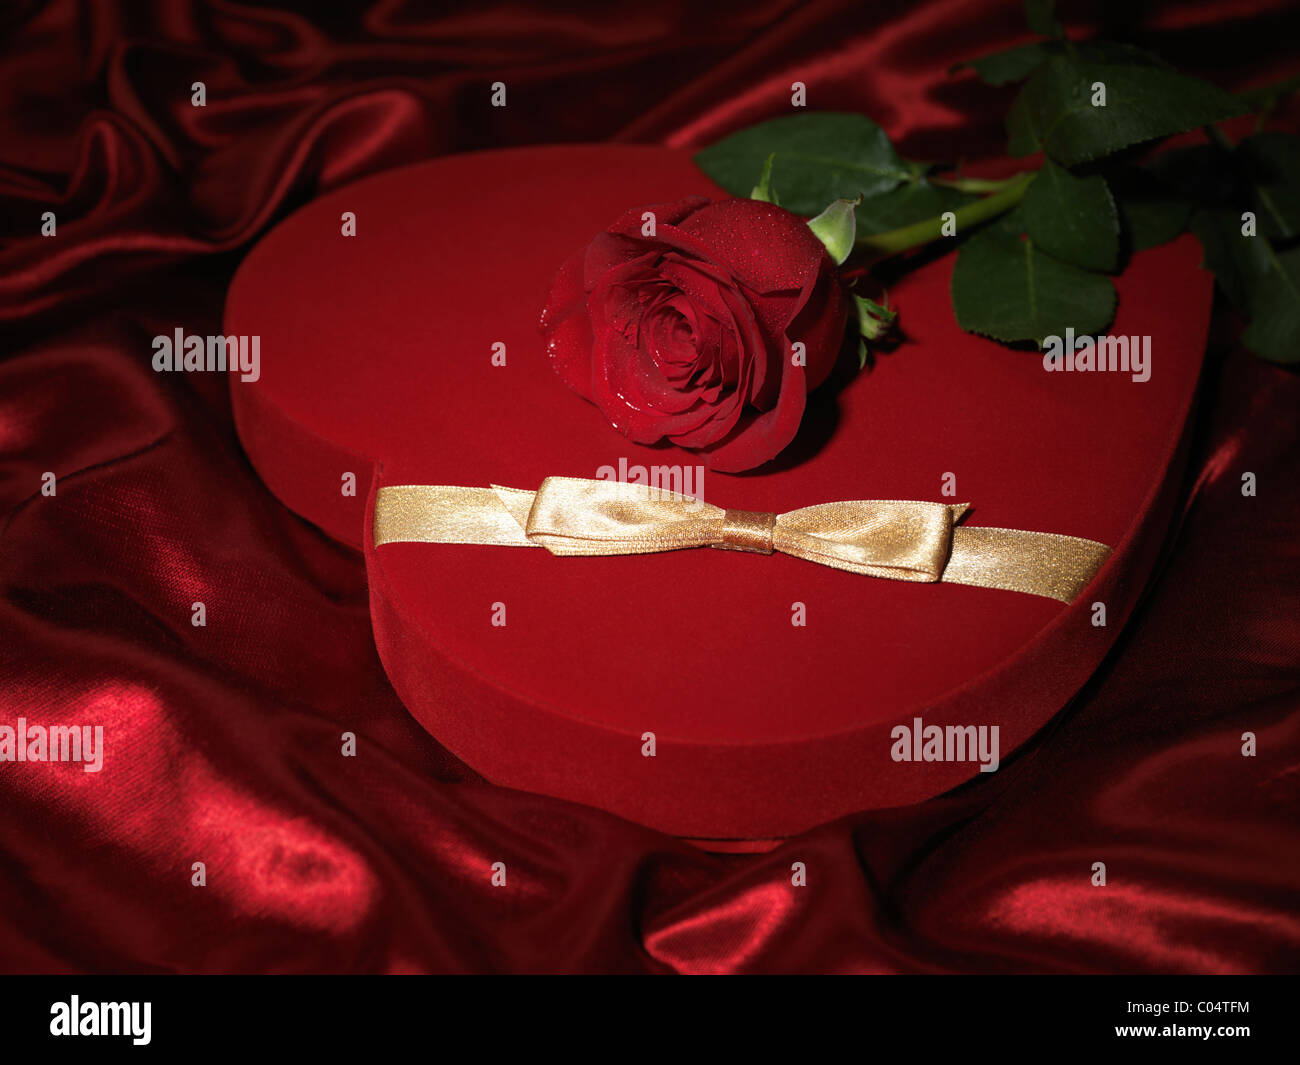 Red heart-shaped gift box and a red rose - Stock Image